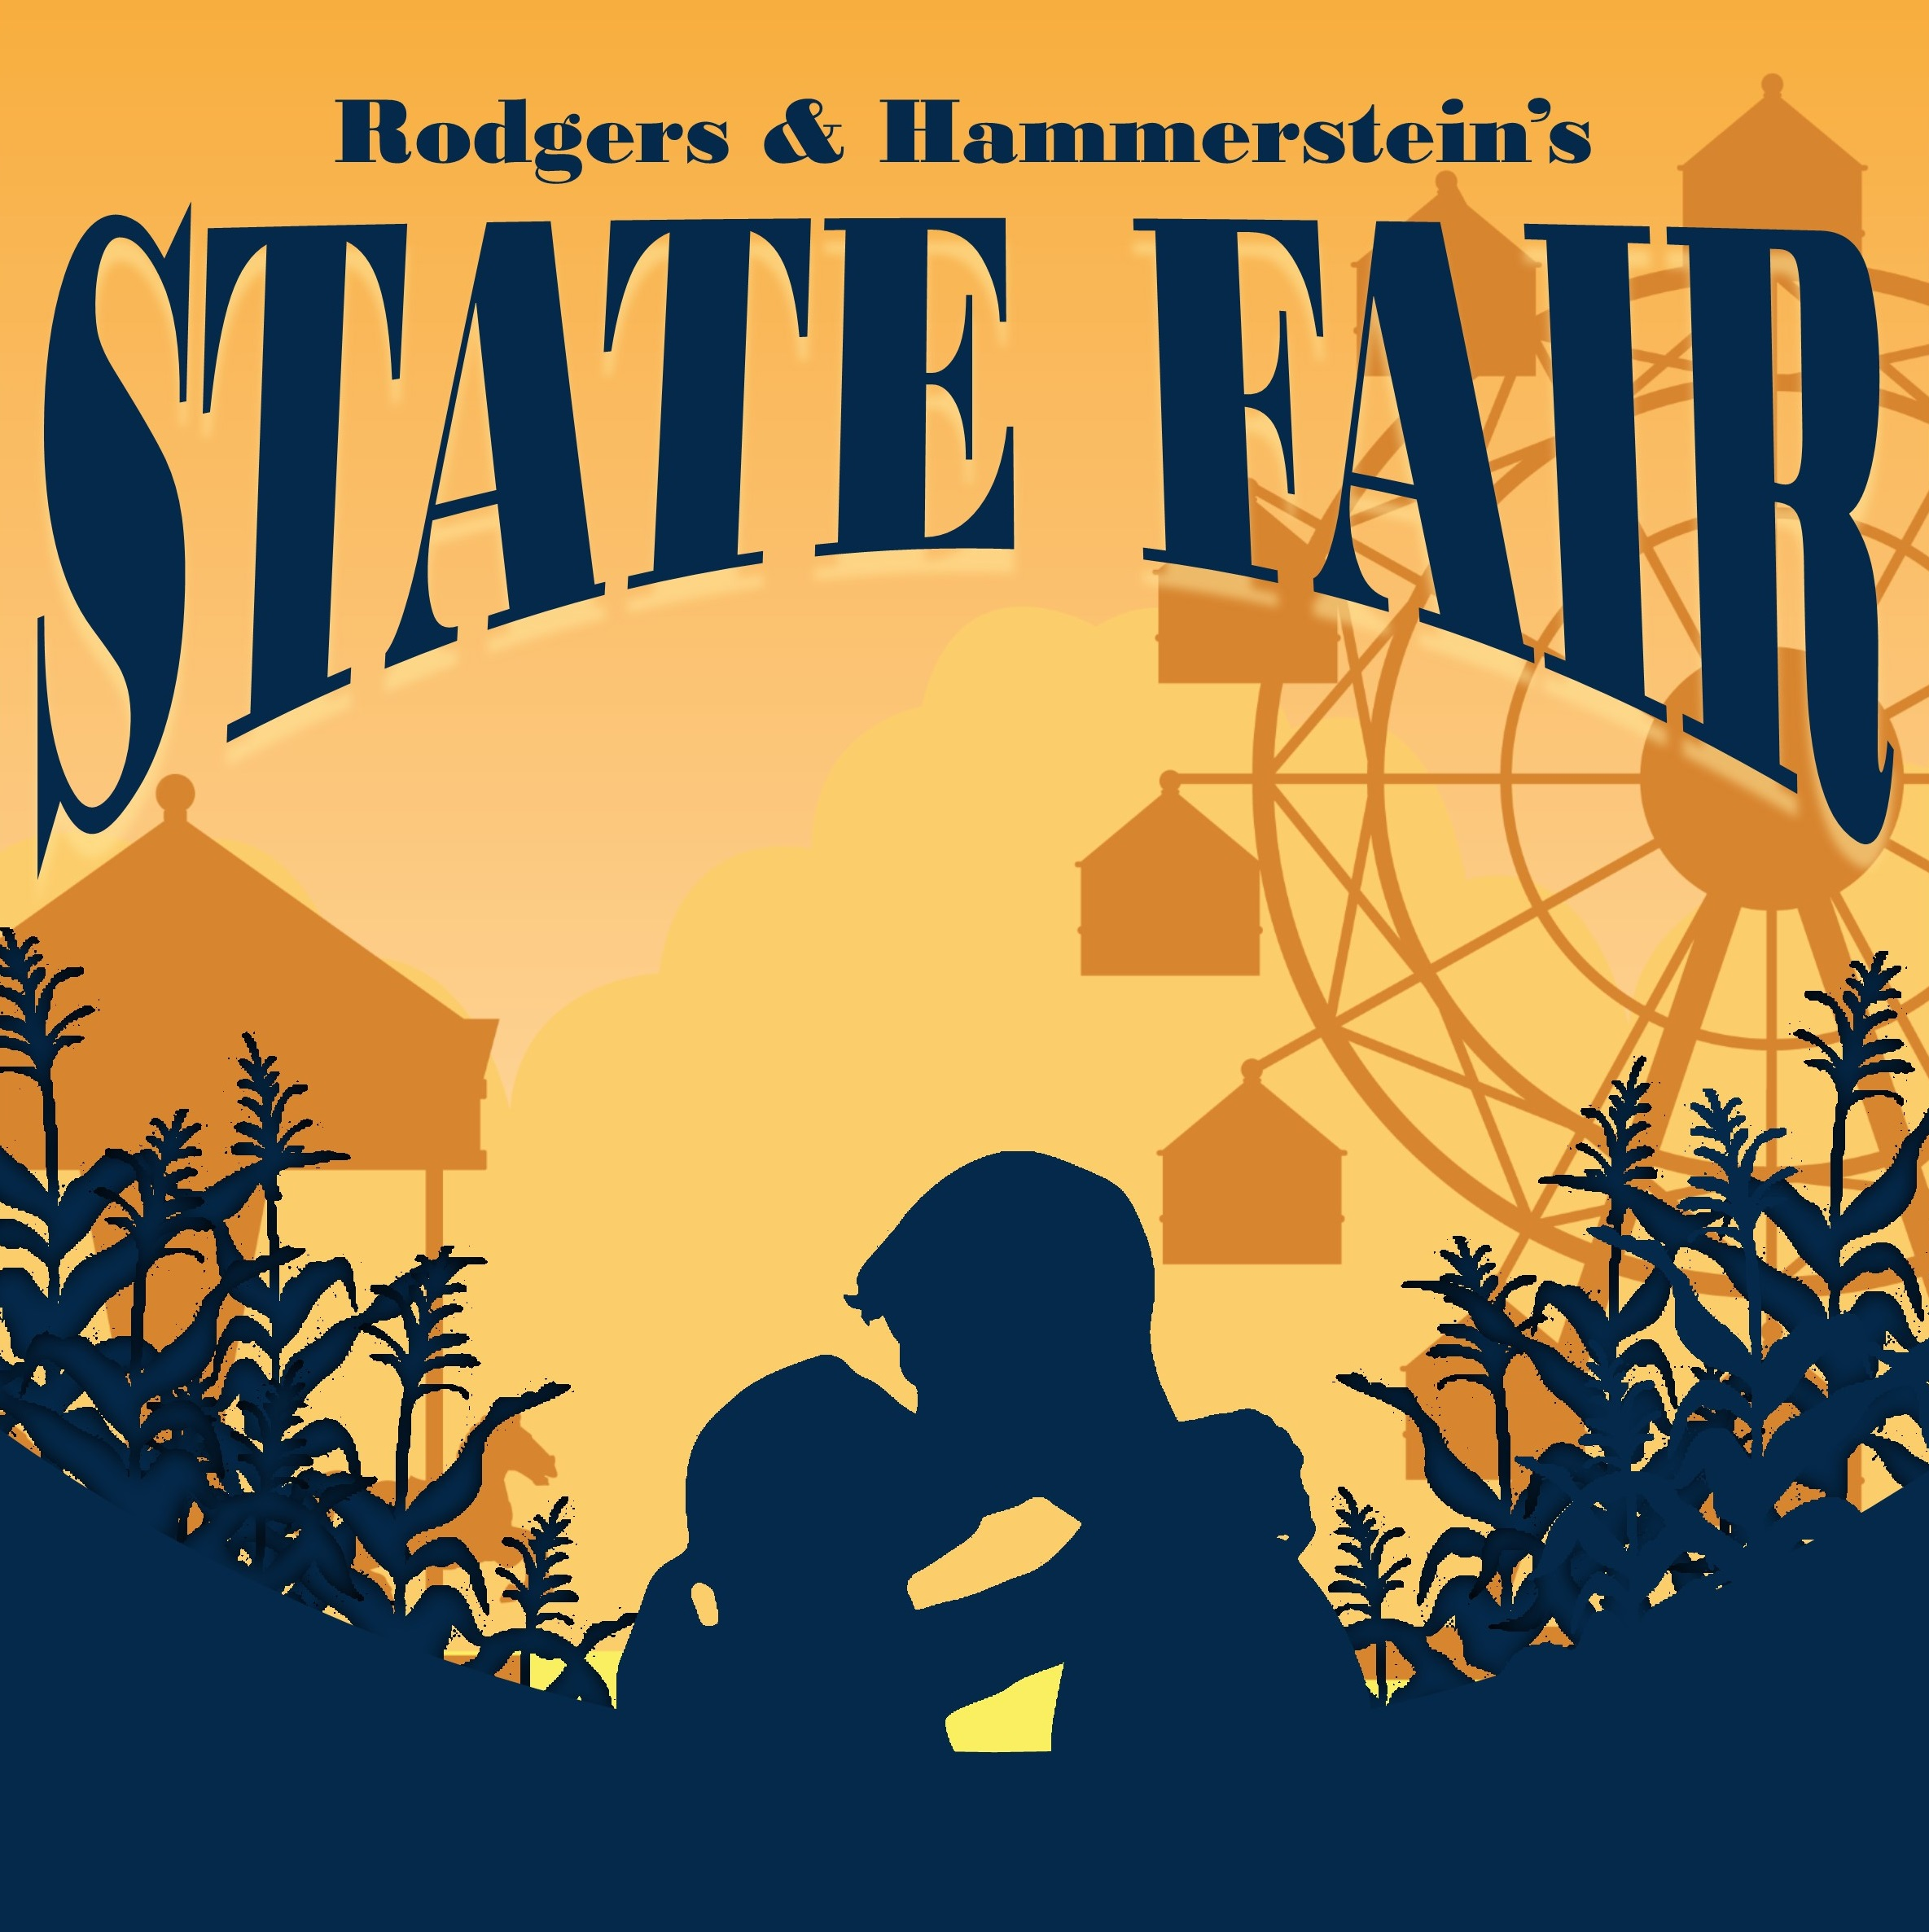 State Fair graphic